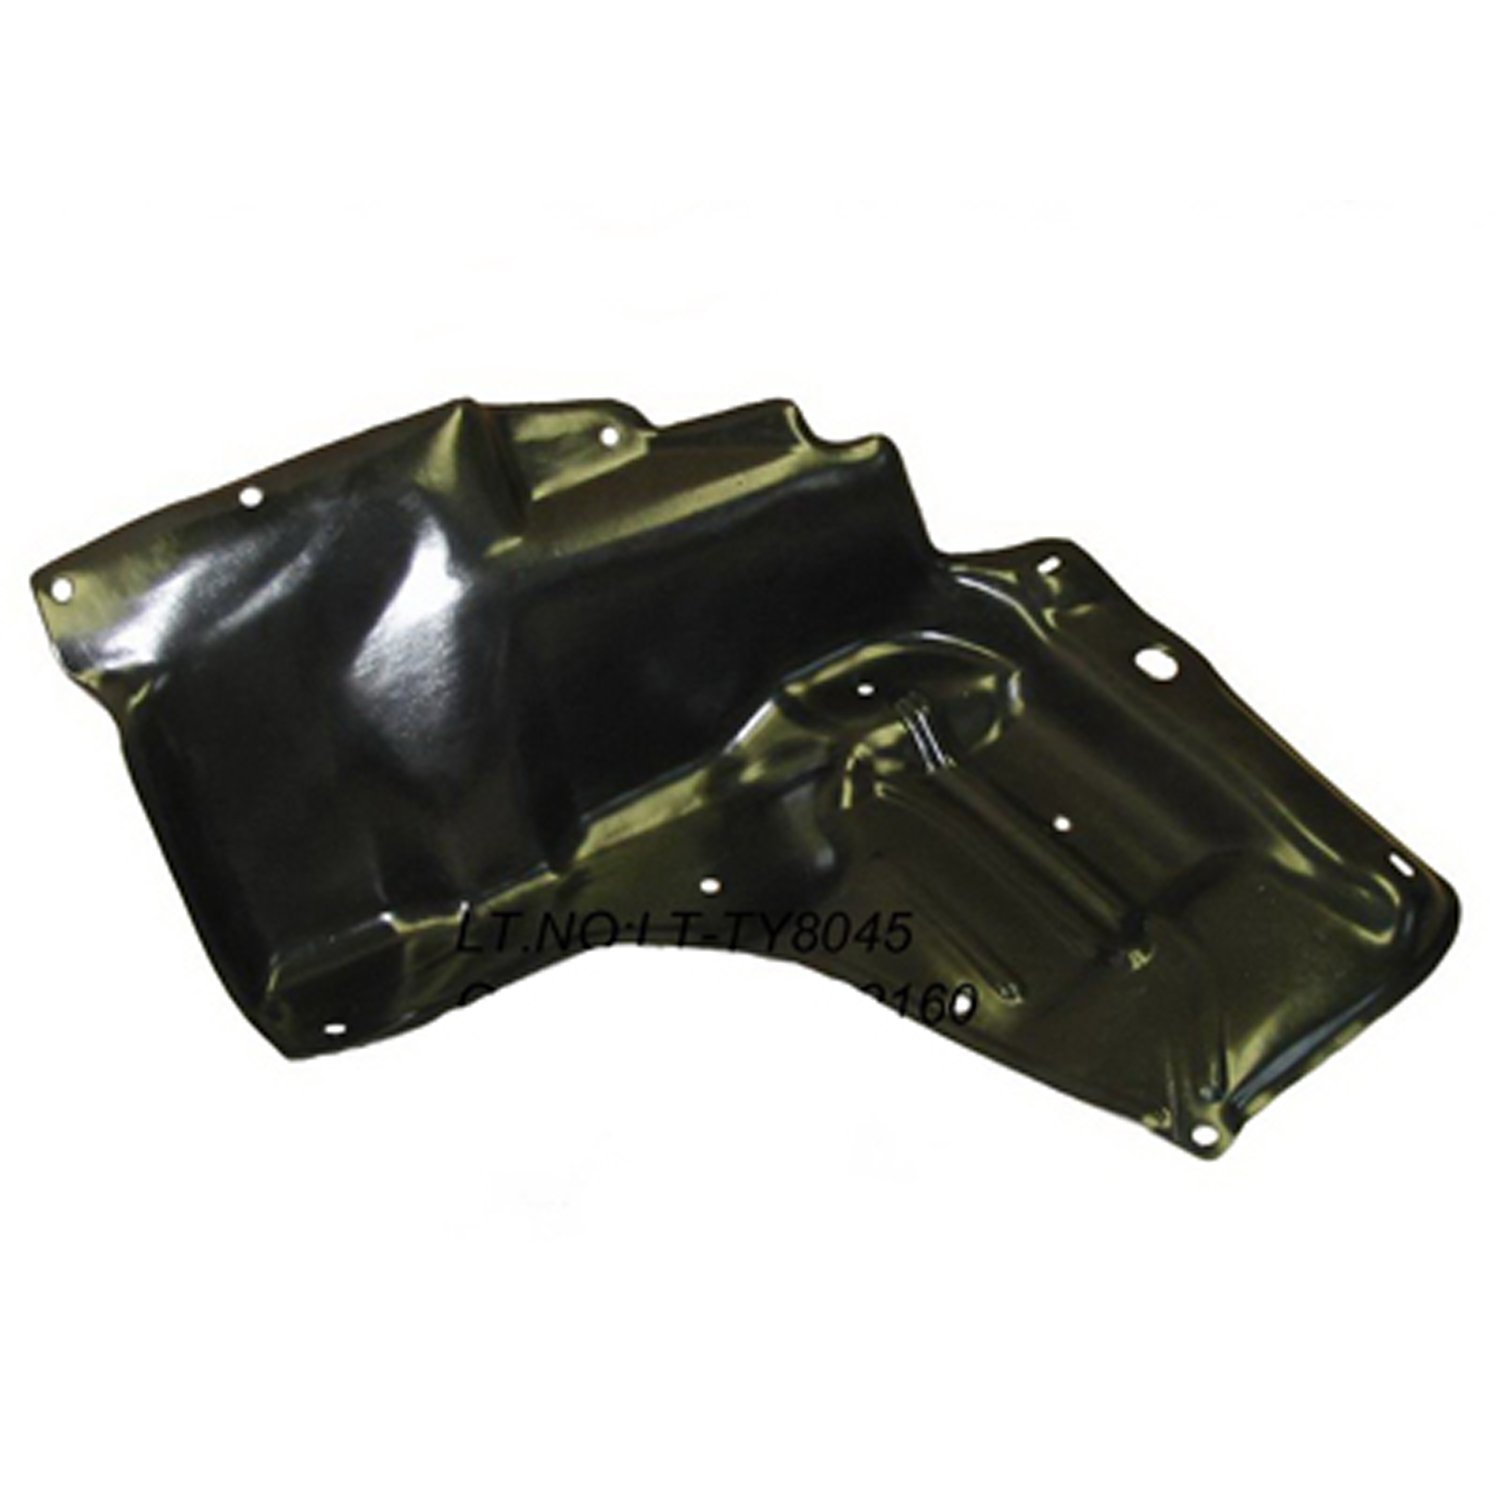 Crash Parts Plus PTM TO1228156 Left Lower Engine Cover for 03-08 Toyota Corolla, Matrix